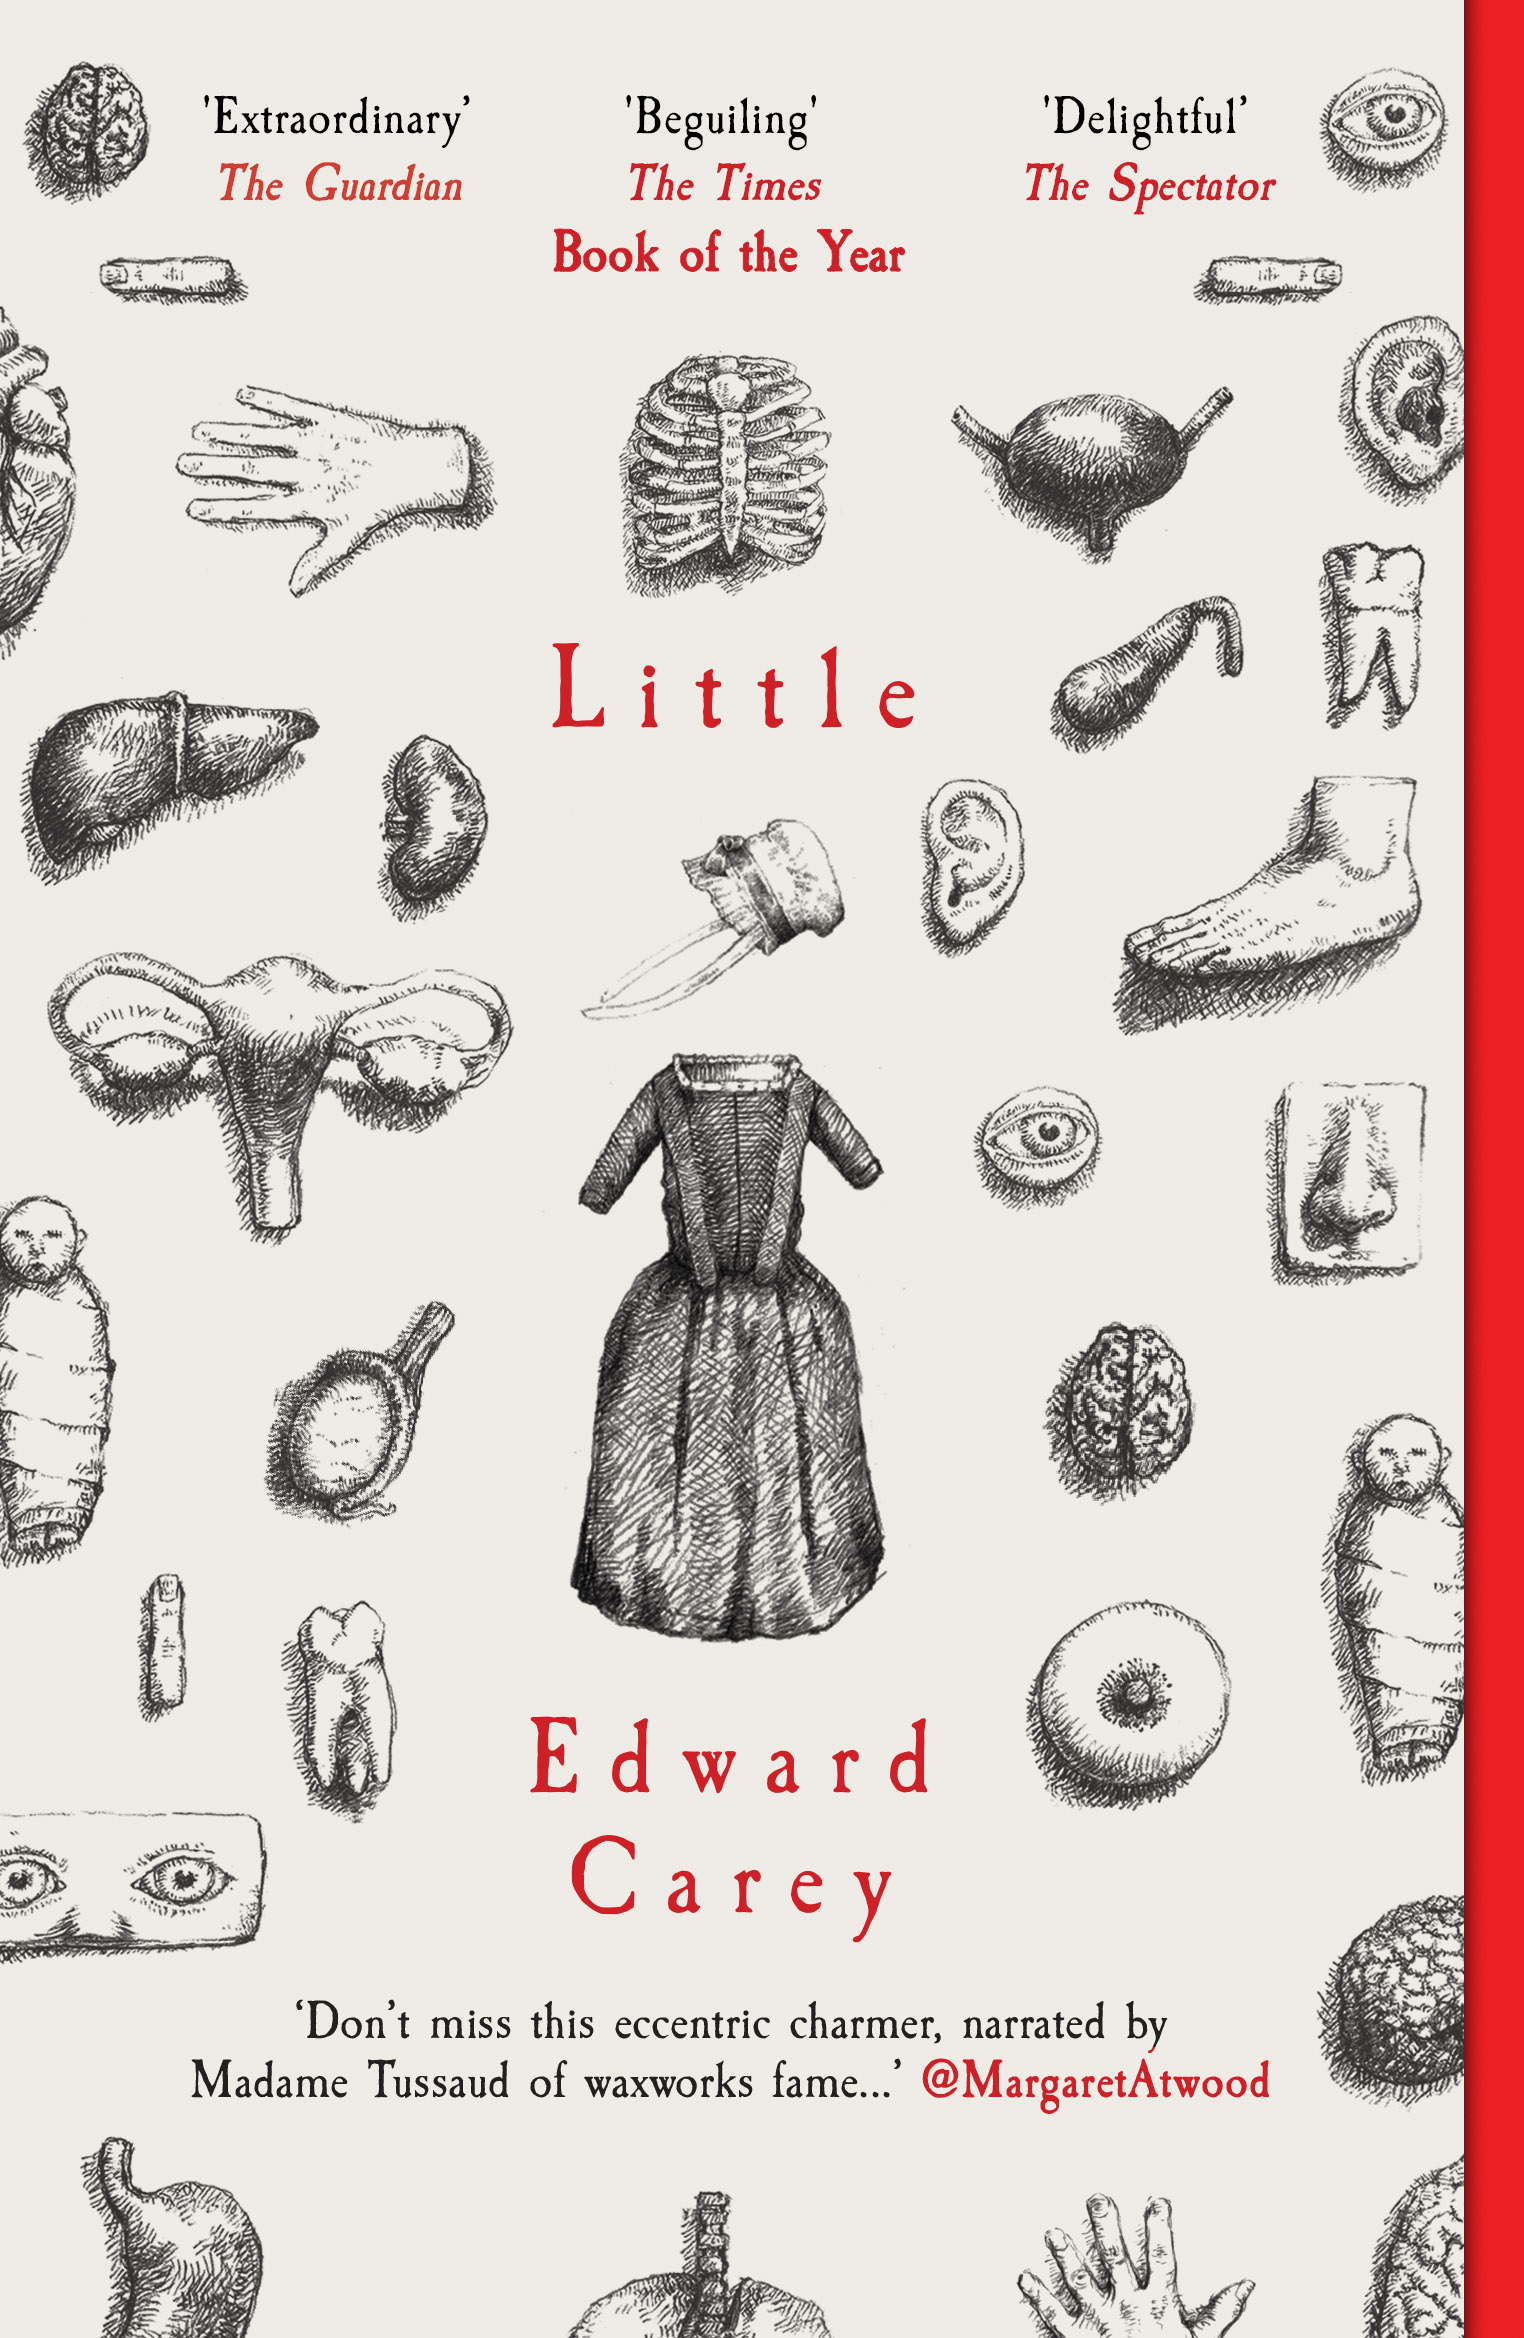 LITTLE by Edward Carey - PB cover.jpg